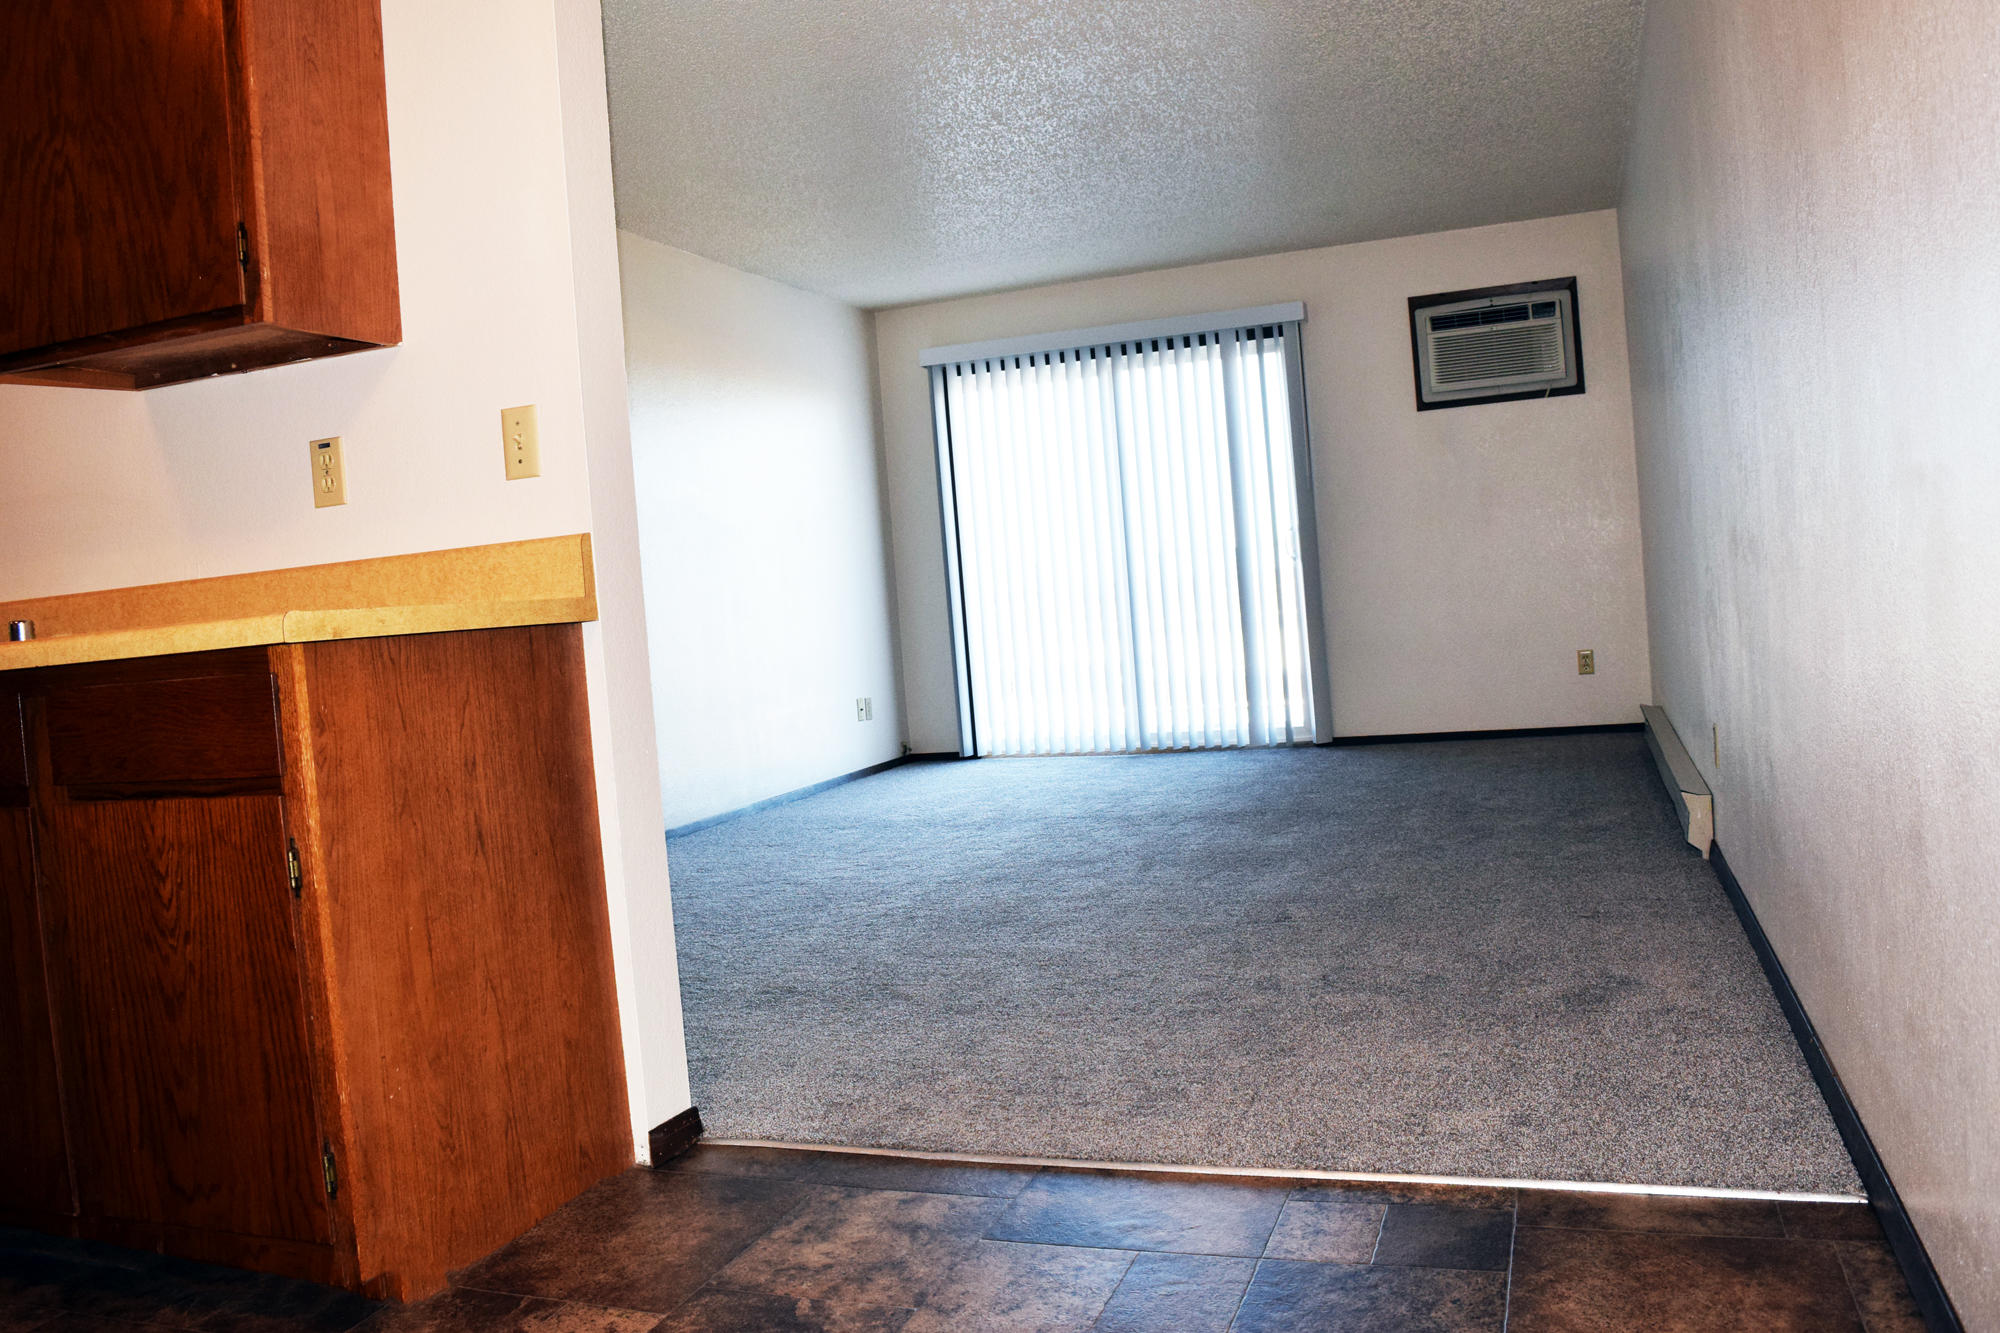 Valley View Apartments image 10